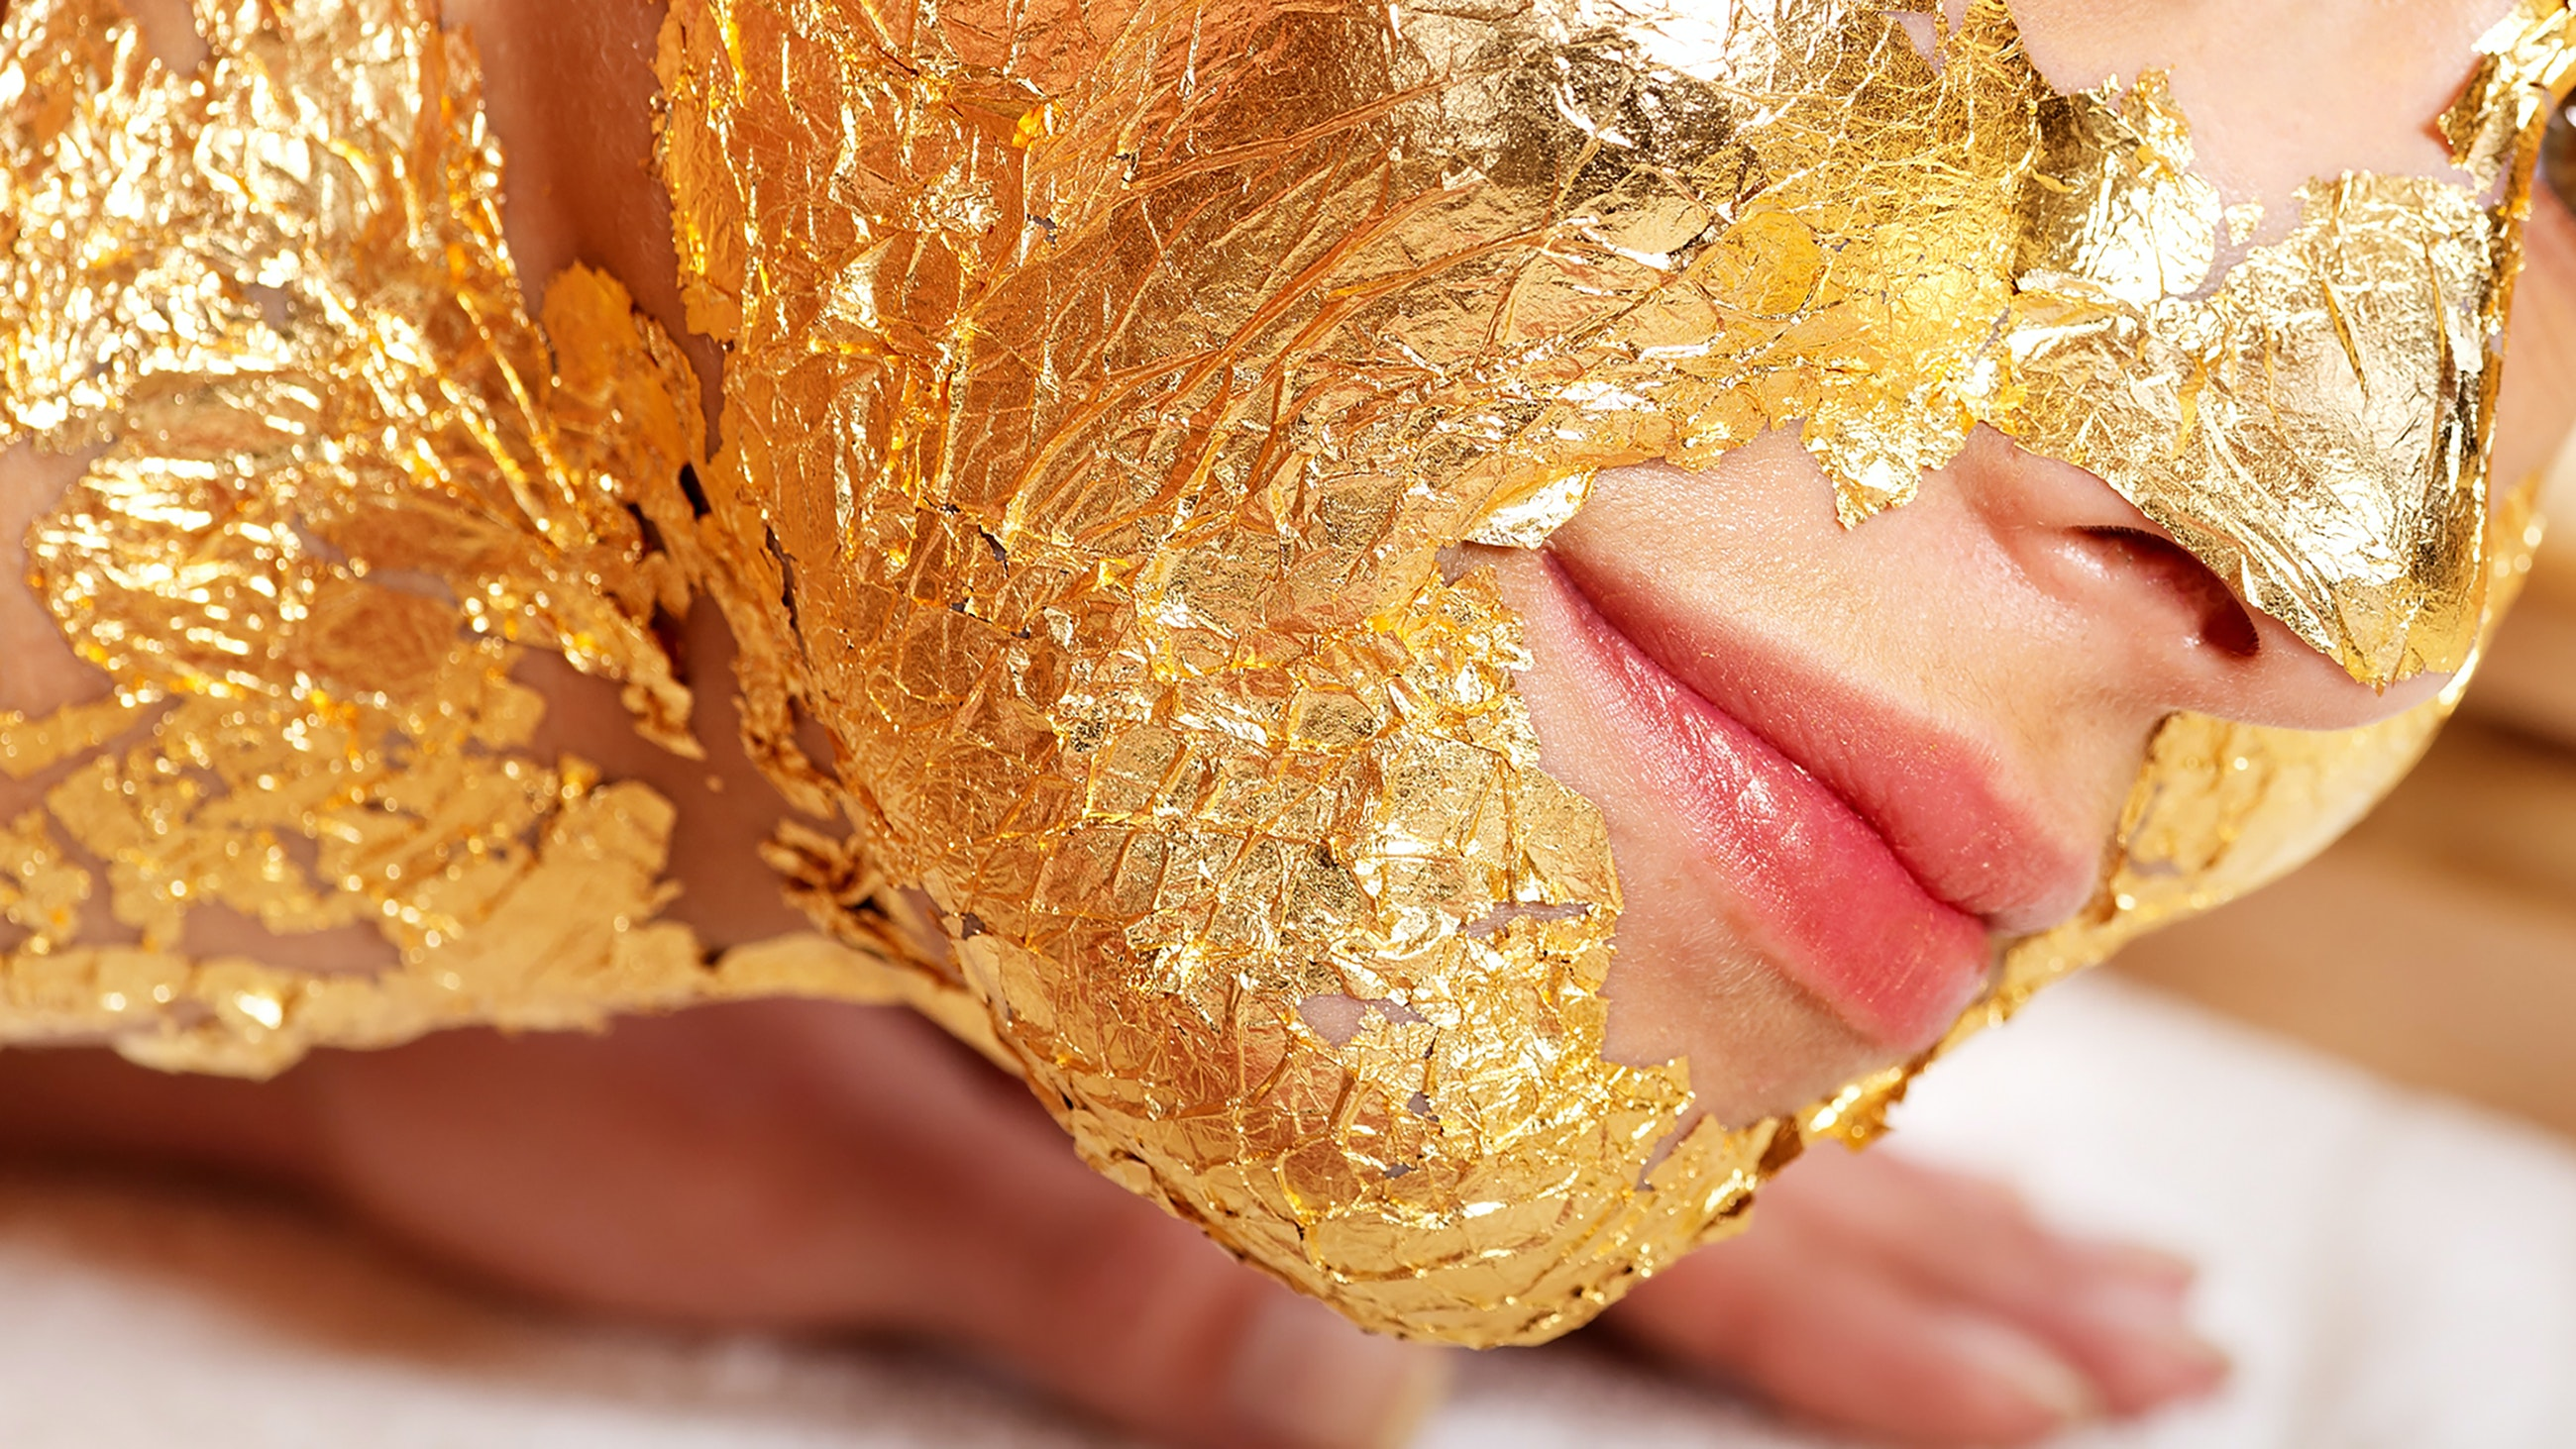 Woman getting face painted in gold